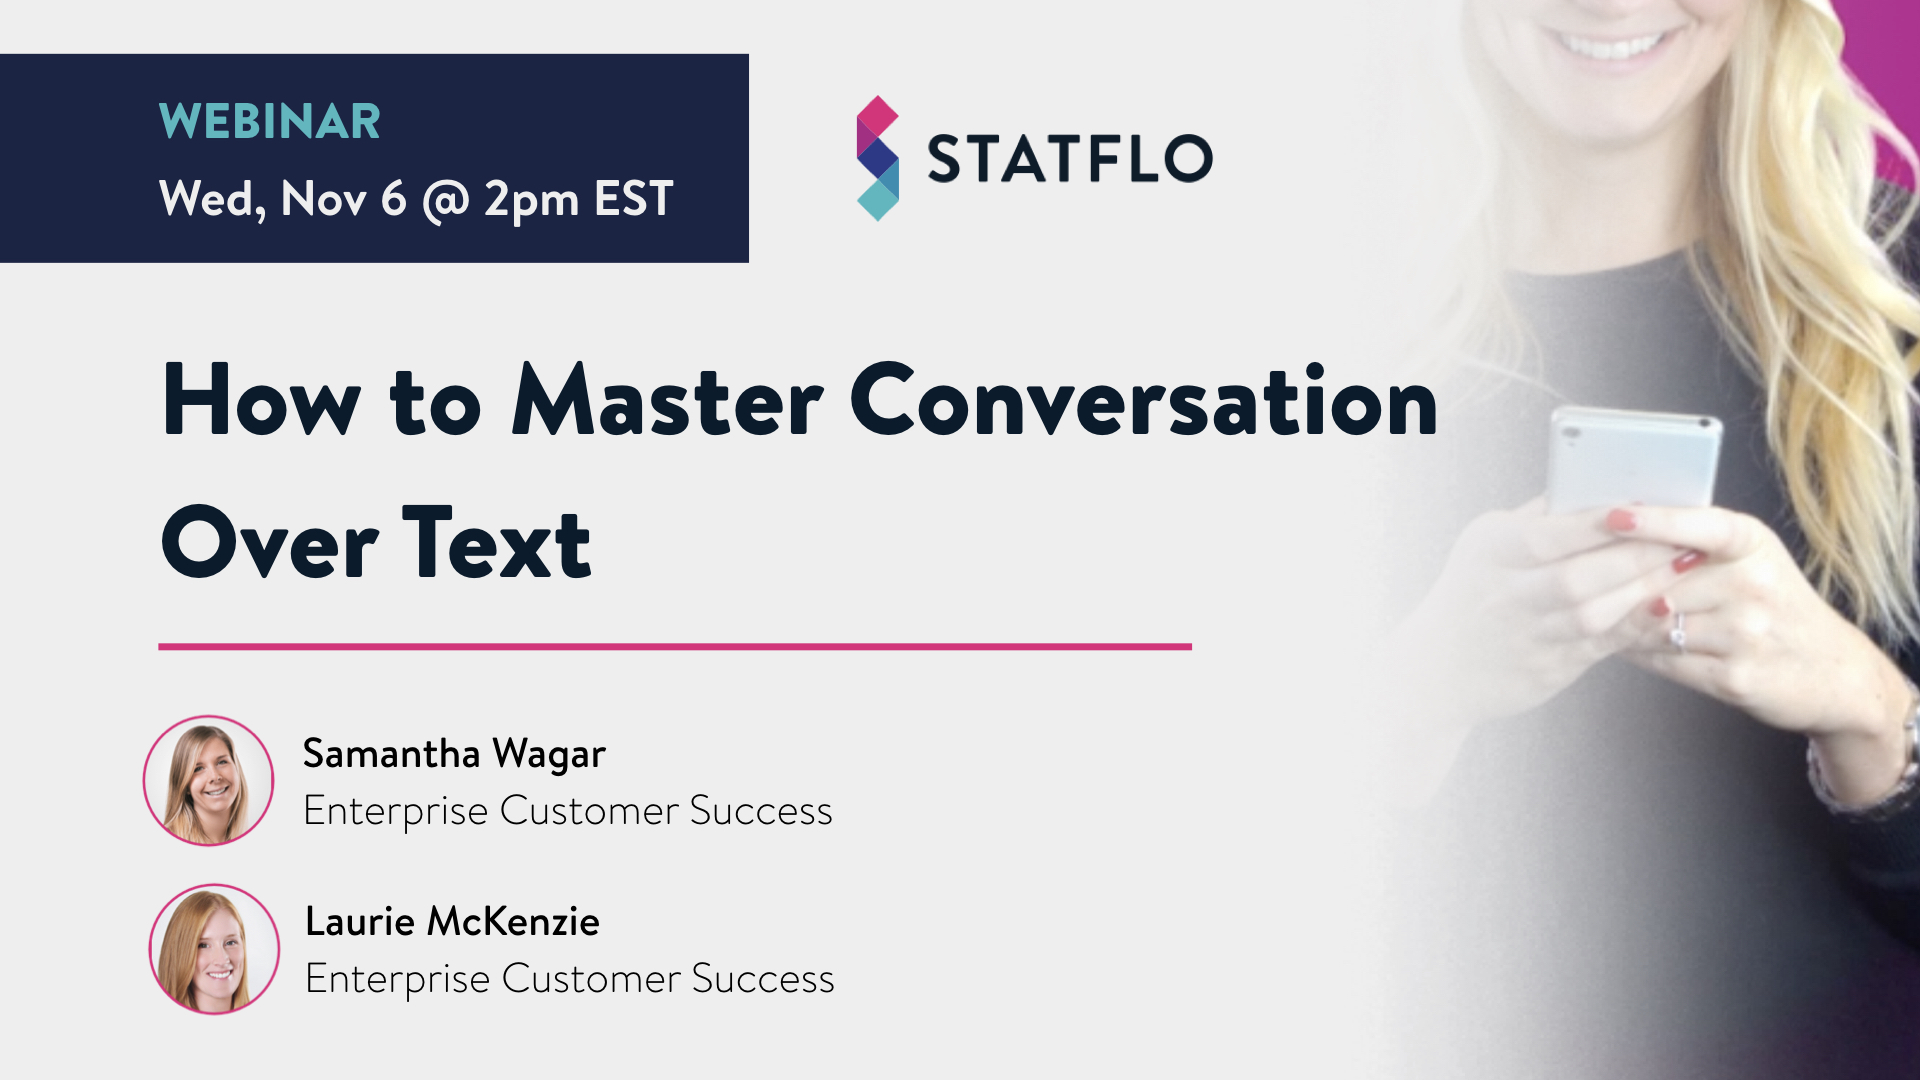 "Join our webinar on ""How to Master Conversation Over Text"" to learn how to drive more store traffic and grow sales using text messaging."